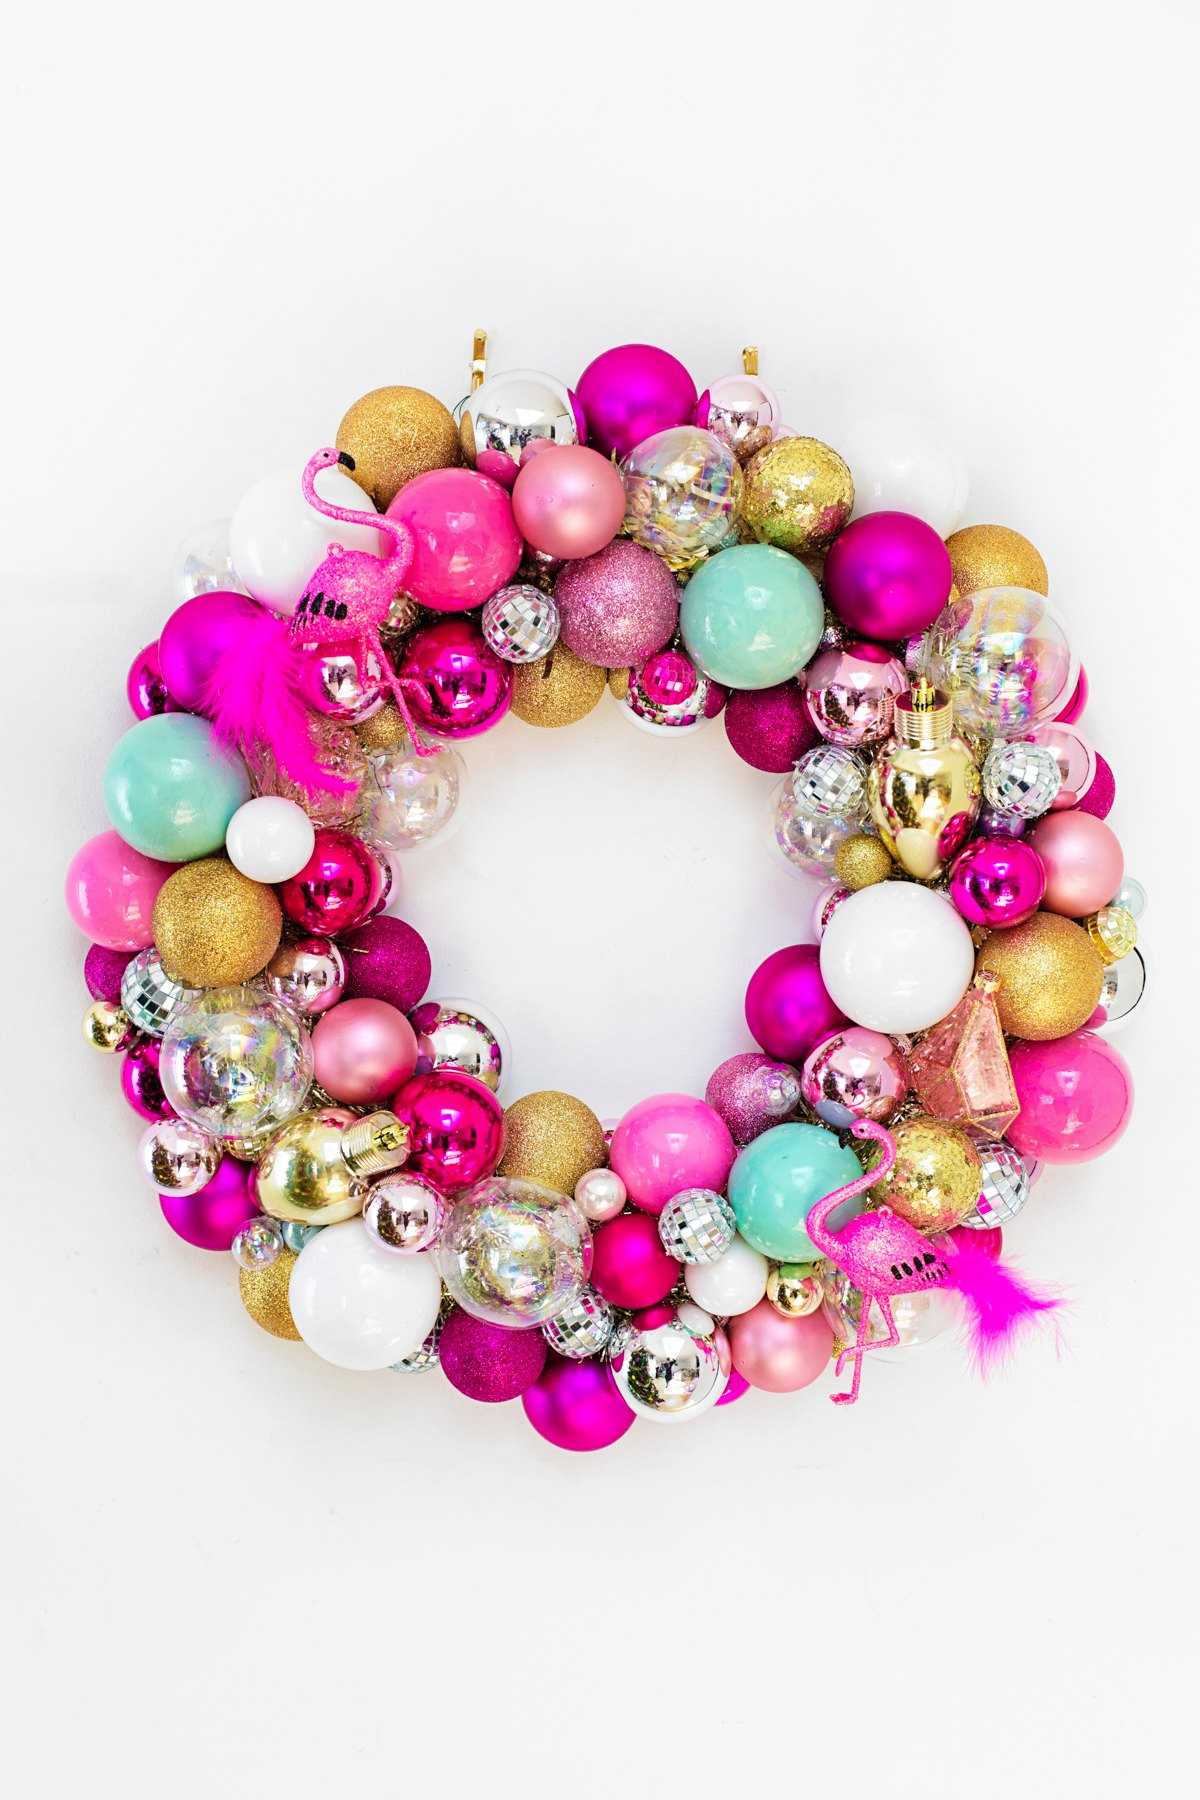 Ornament wreath from Studio DIY